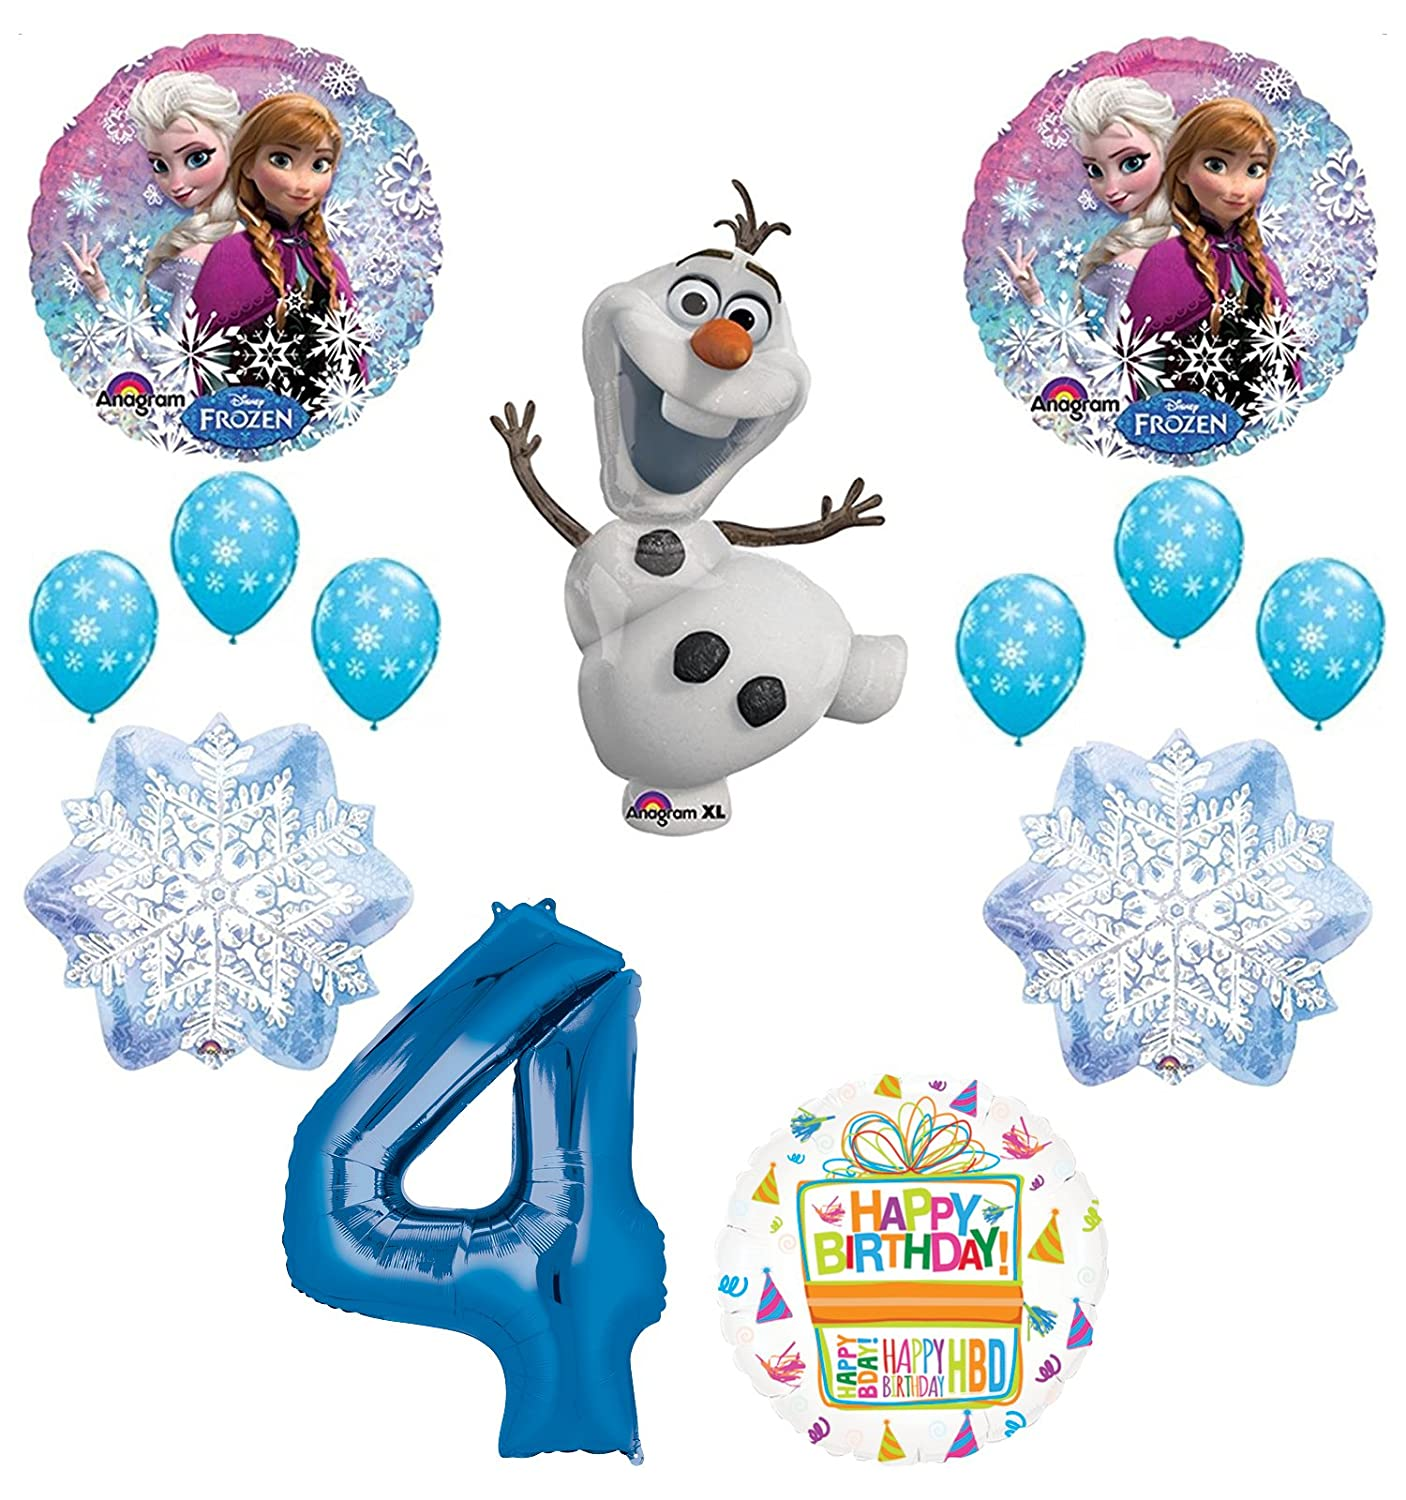 Amazon Mayflower Products Frozen 4th Birthday Party Supplies Olaf Elsa And Anna Balloon Bouquet Decorations Blue 4 Toys Games